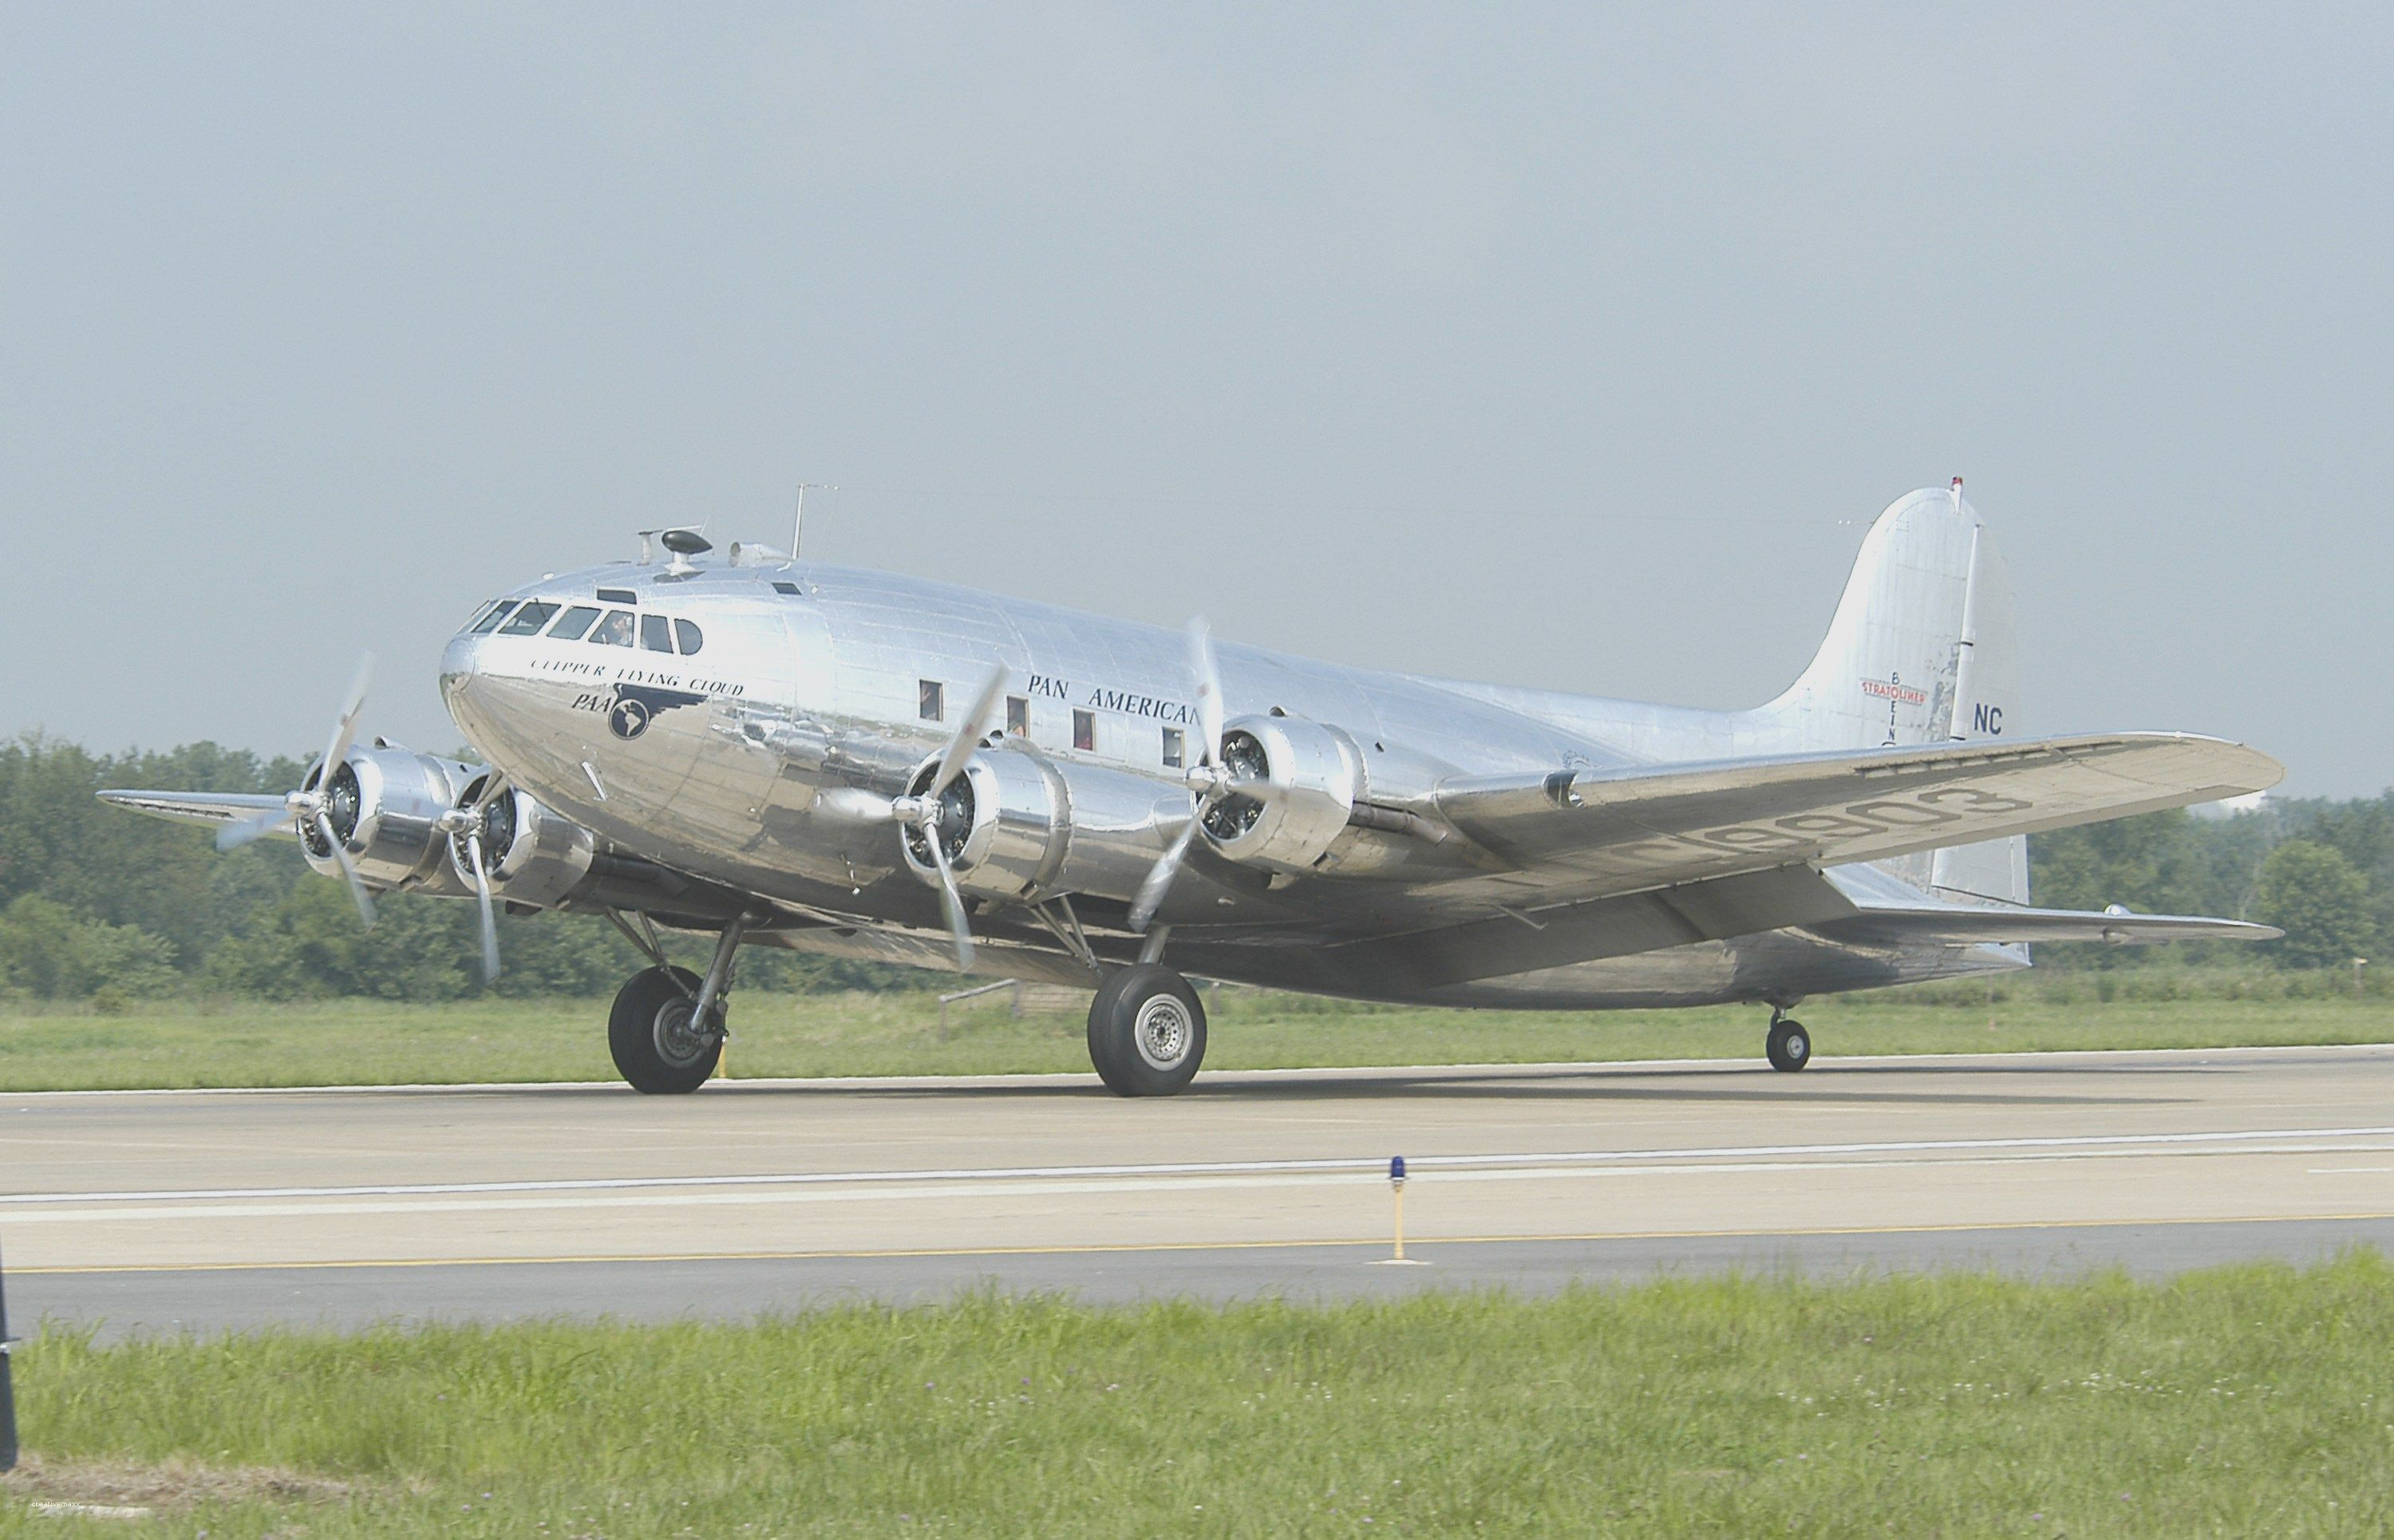 Pan aviation american day pictures